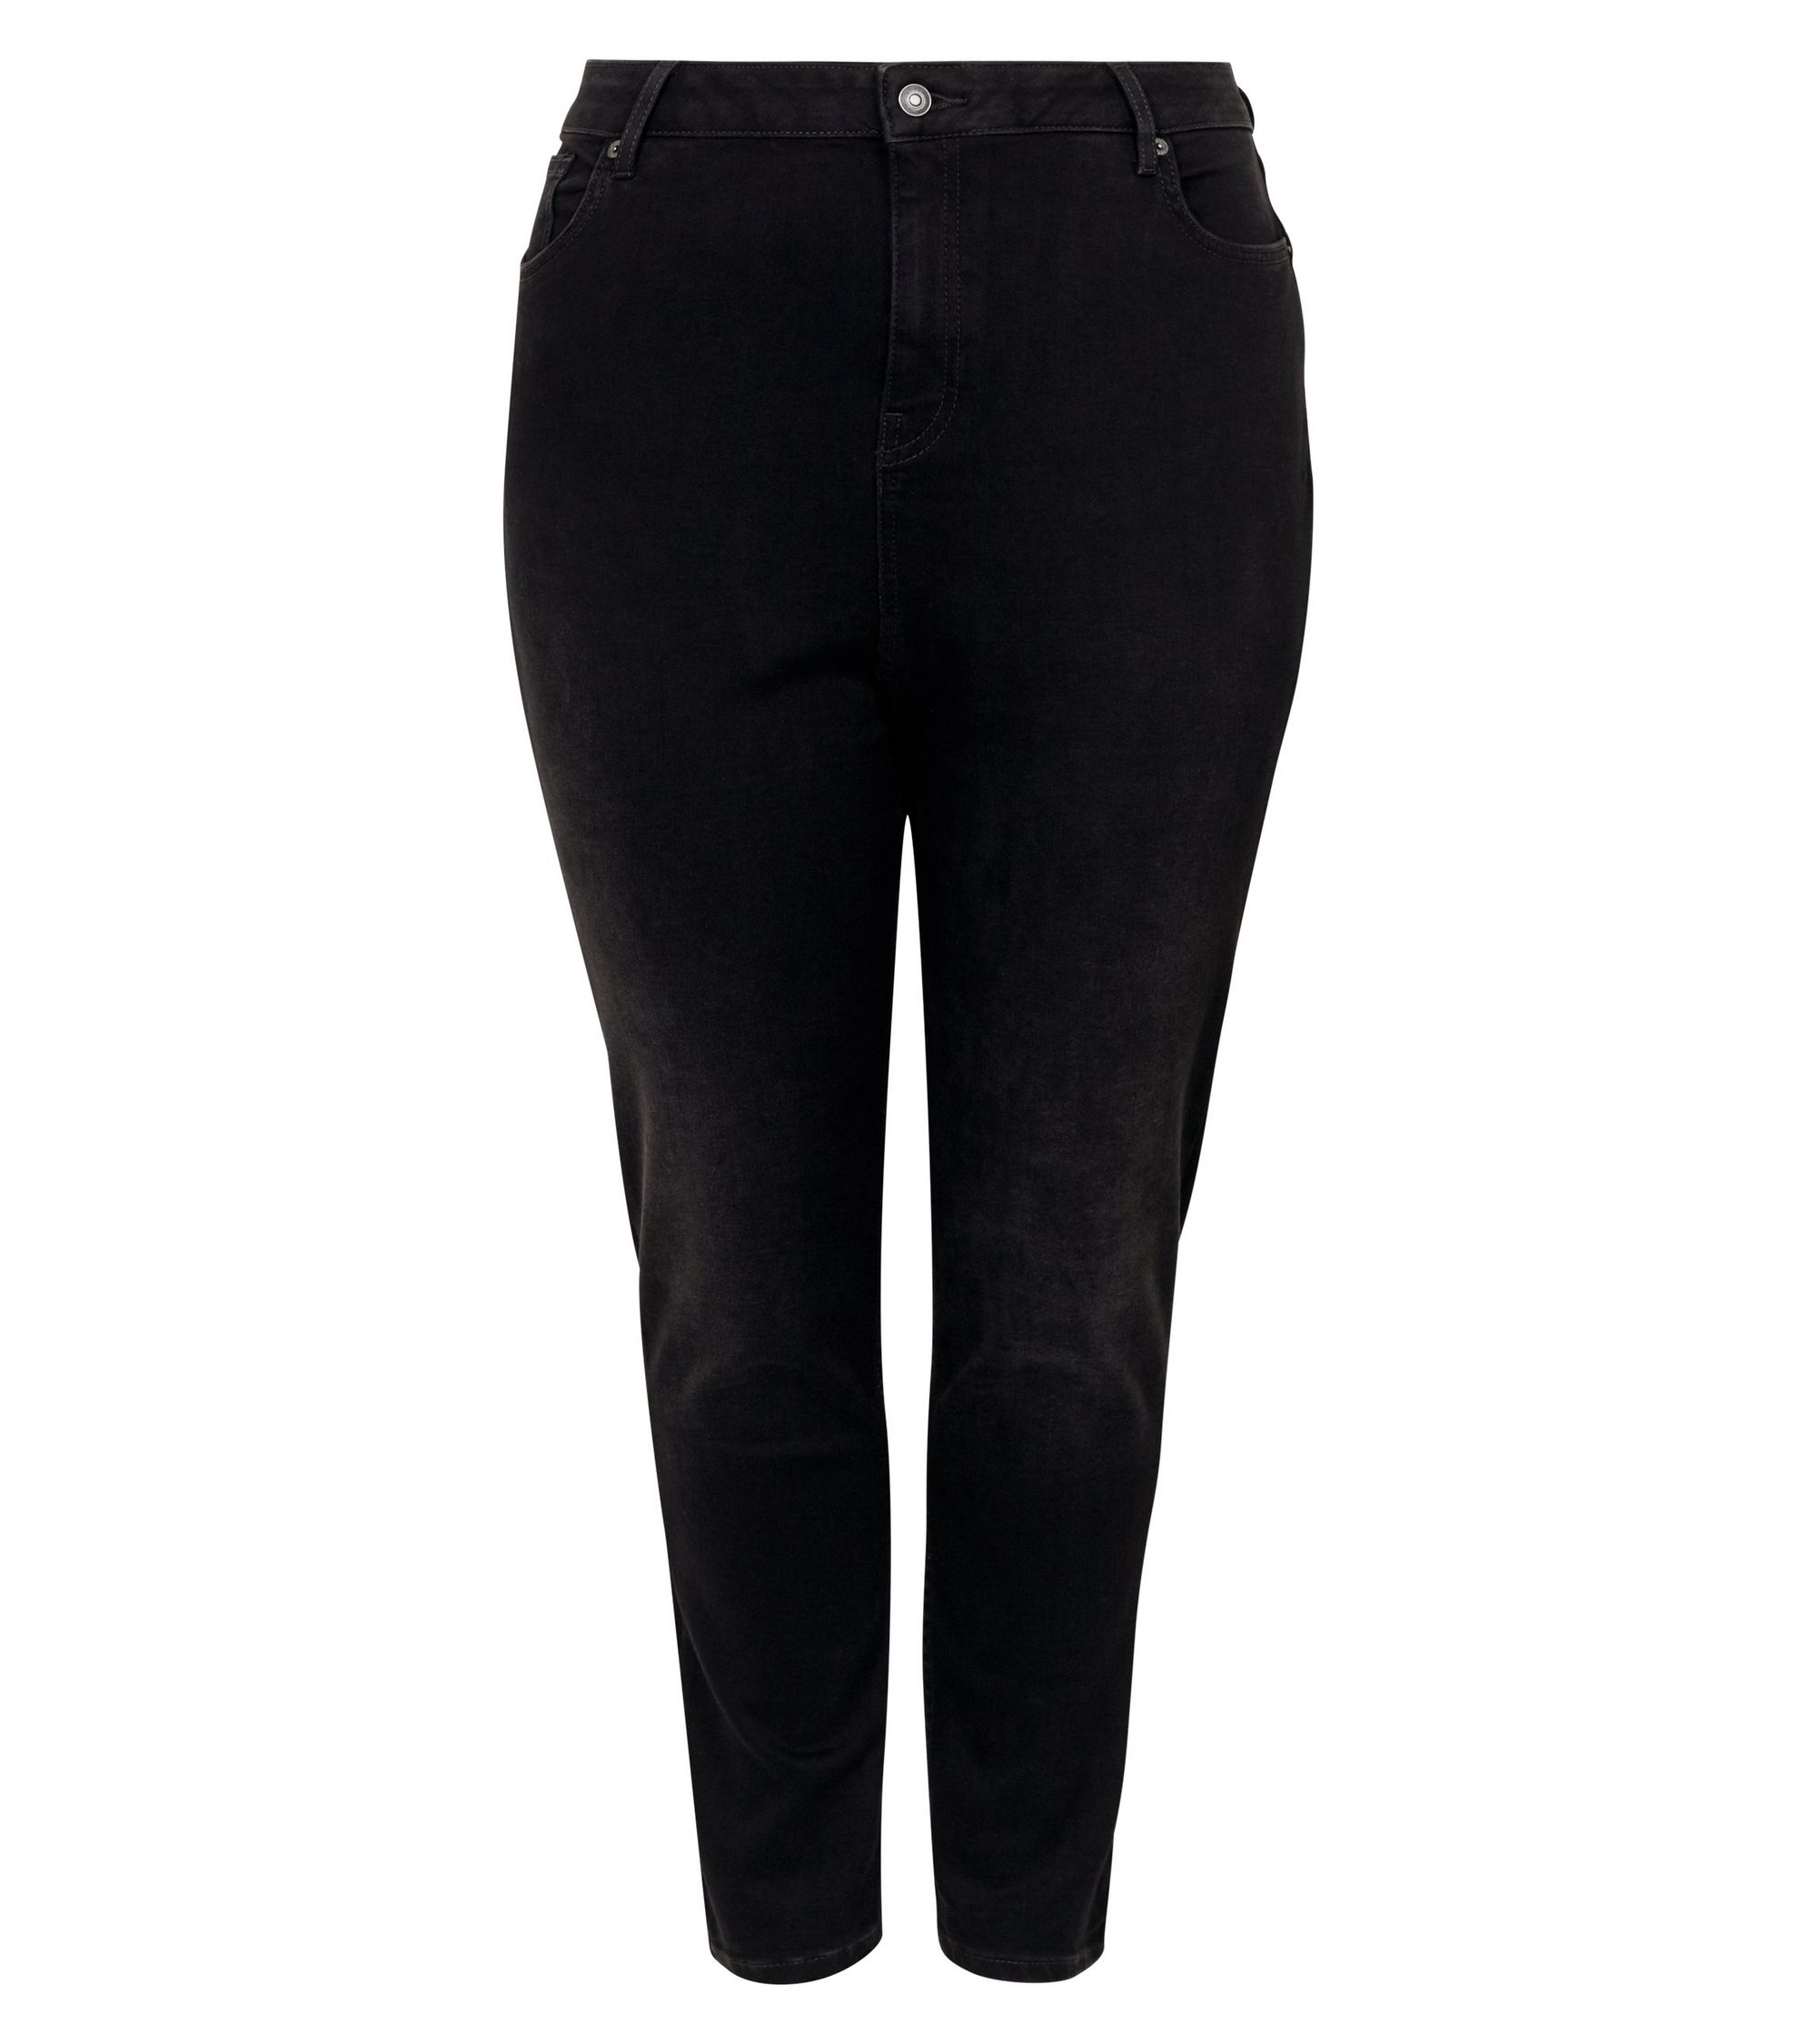 7981e772f New Look Curves Black Lift And Shape Skinny Jeans at £25.99 | love ...